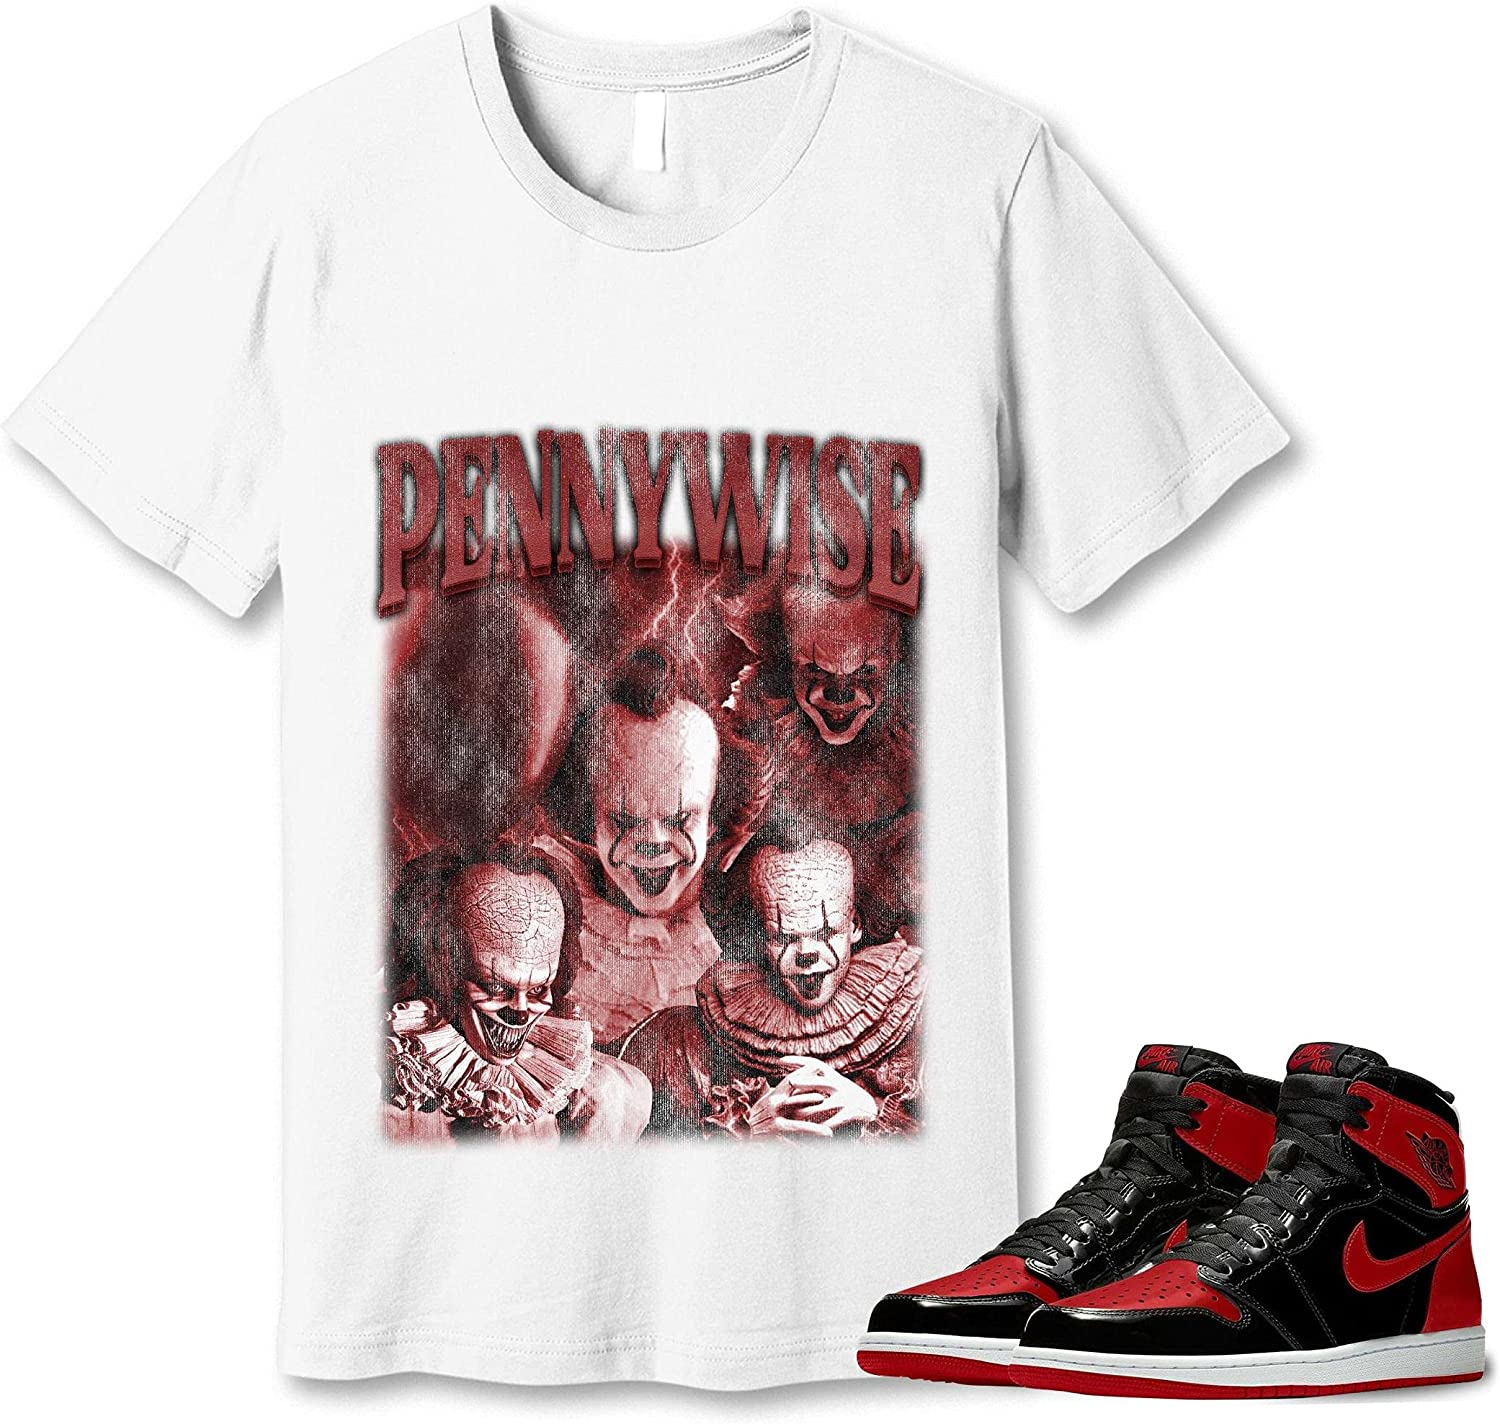 #Pennywise Patent Financial sales sale Leather T-Shirt to Match 1 Jordan Sneak Banned price